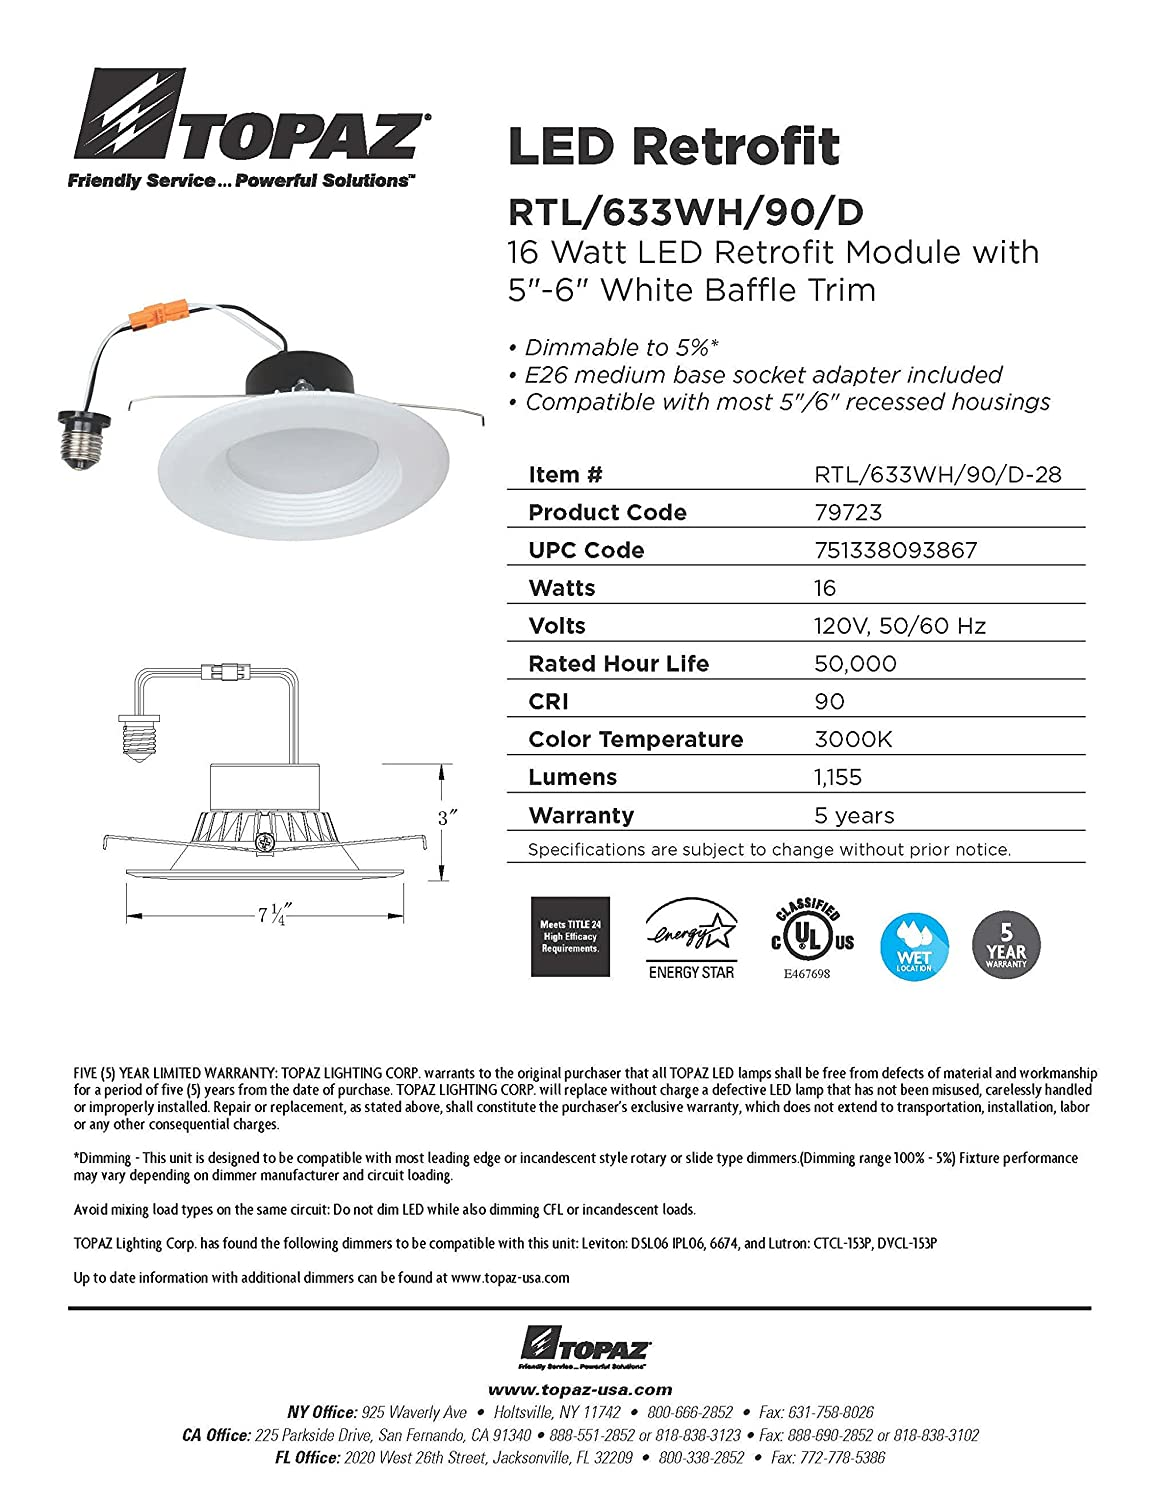 Topaz Lighting 79723 Led Recessed Retrofit Trim 5 6 Baffle White Wiring Diagram 16w Cct 3000k 1155 Lumens Save Time And Money Energy Efficient Easy To Install